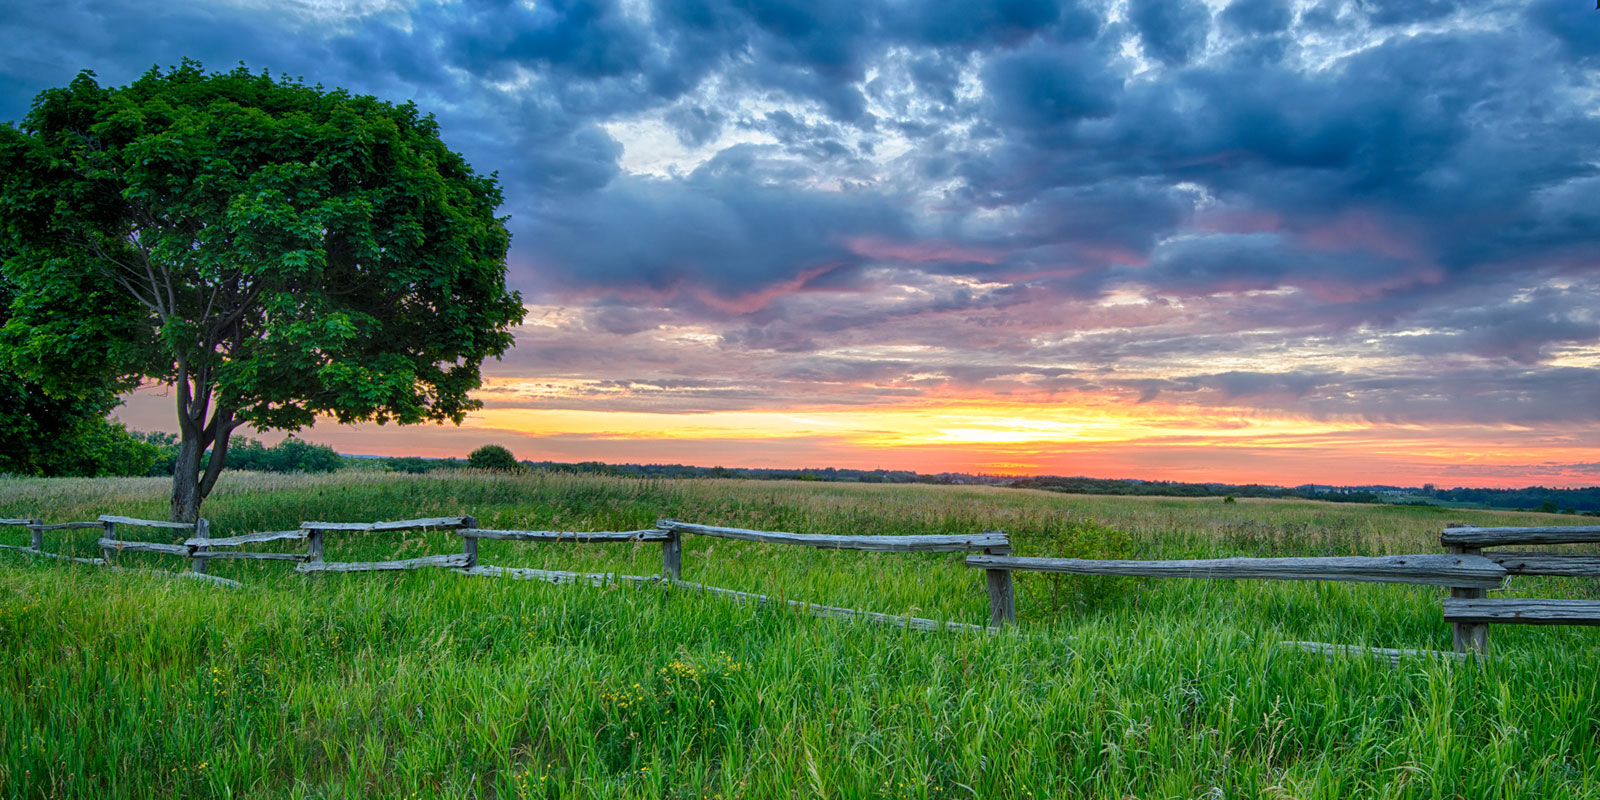 sunrise tree and fence rural ontario landscape photography